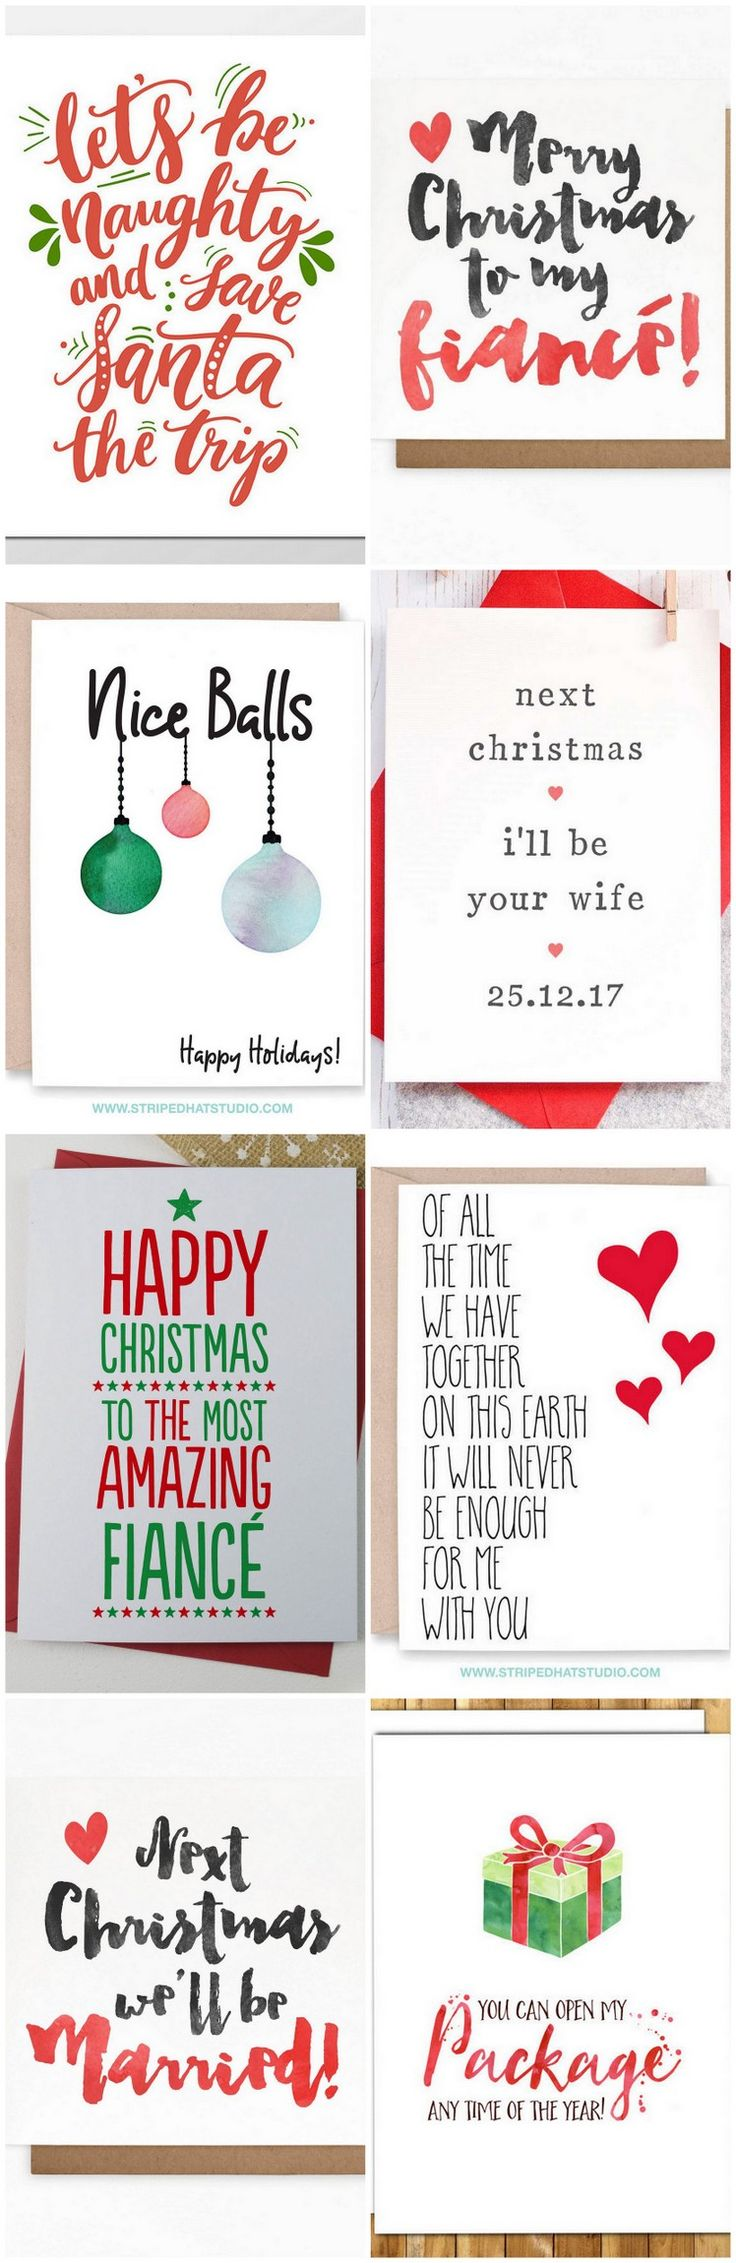 18 Best Funny Greeting Cards Images On Pinterest Funny Greeting